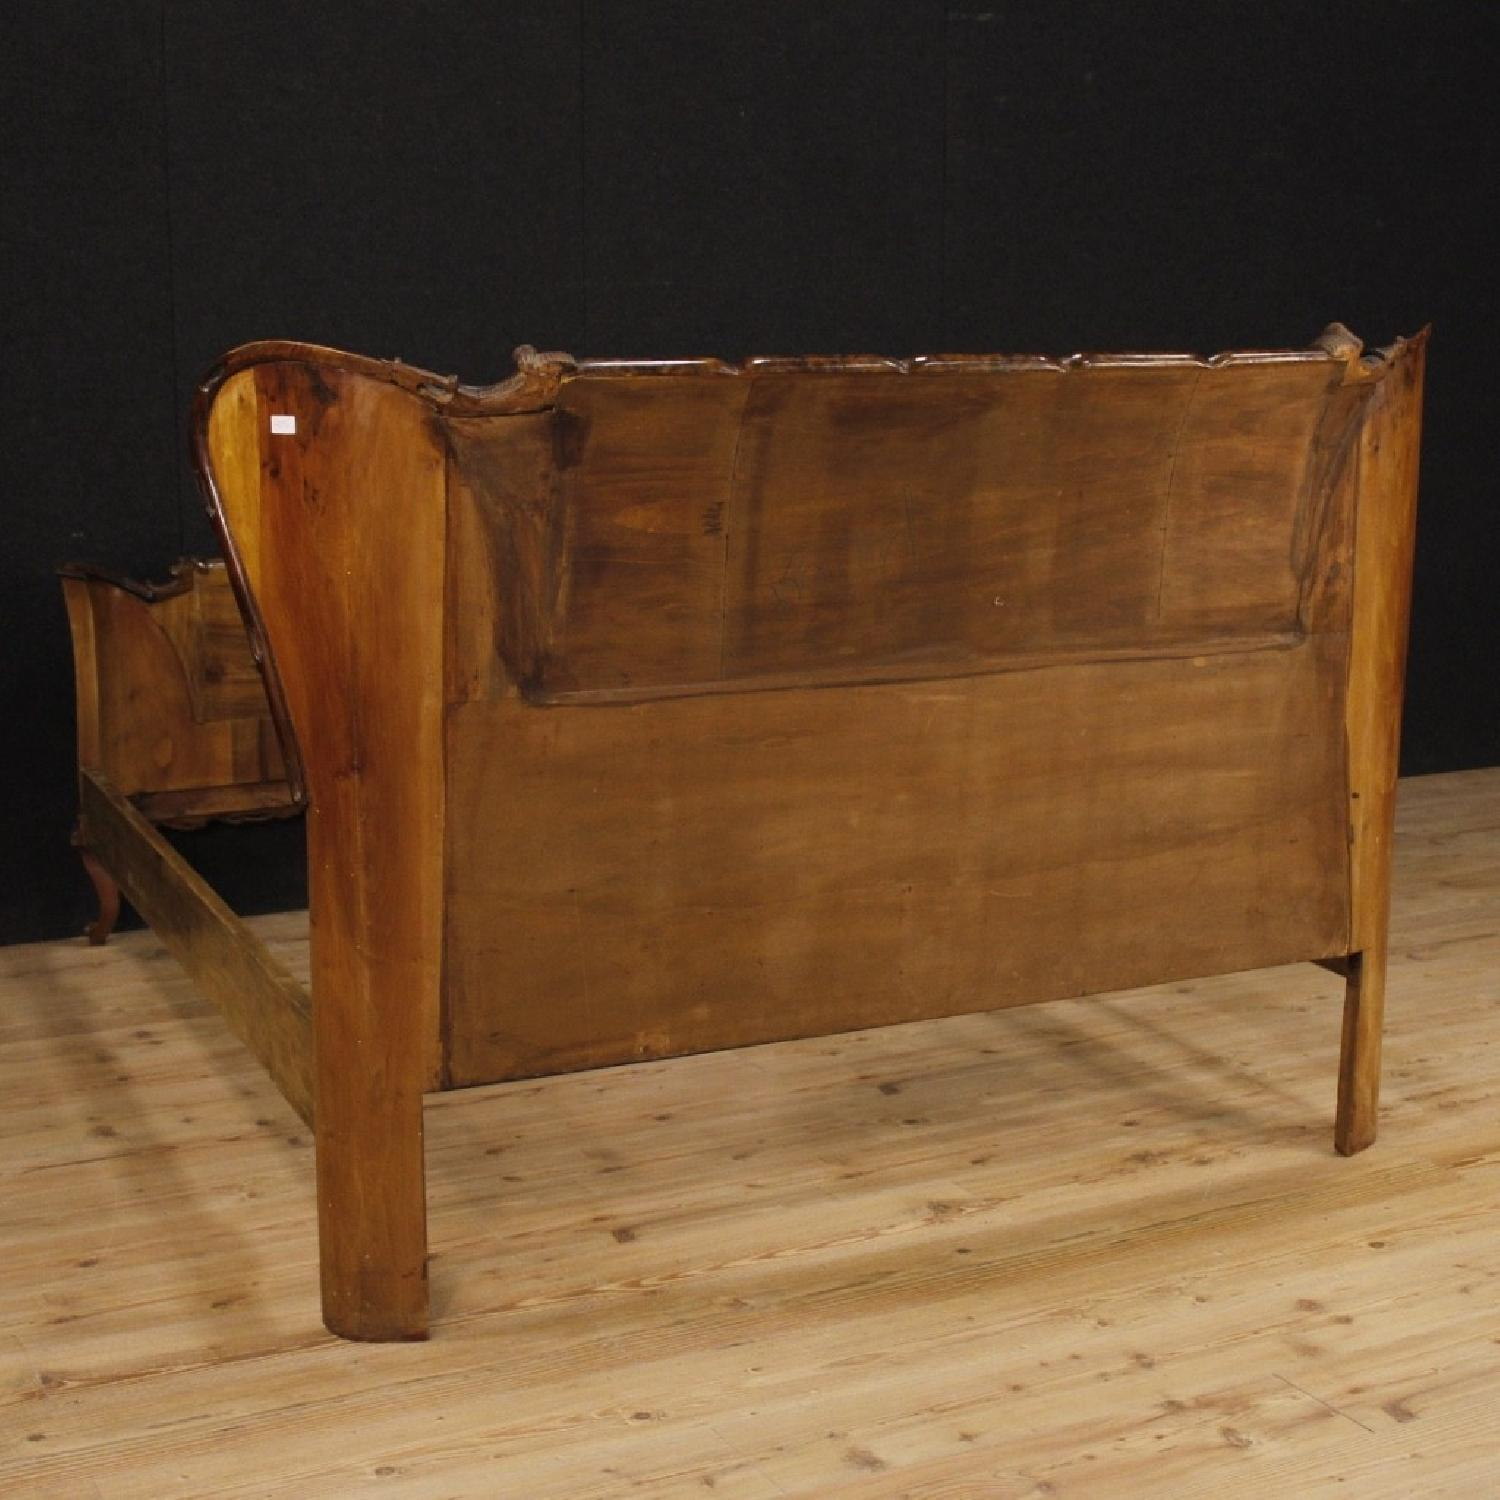 20th Century Cherry, Beech, Burl Walnut Italian Double Bed-8